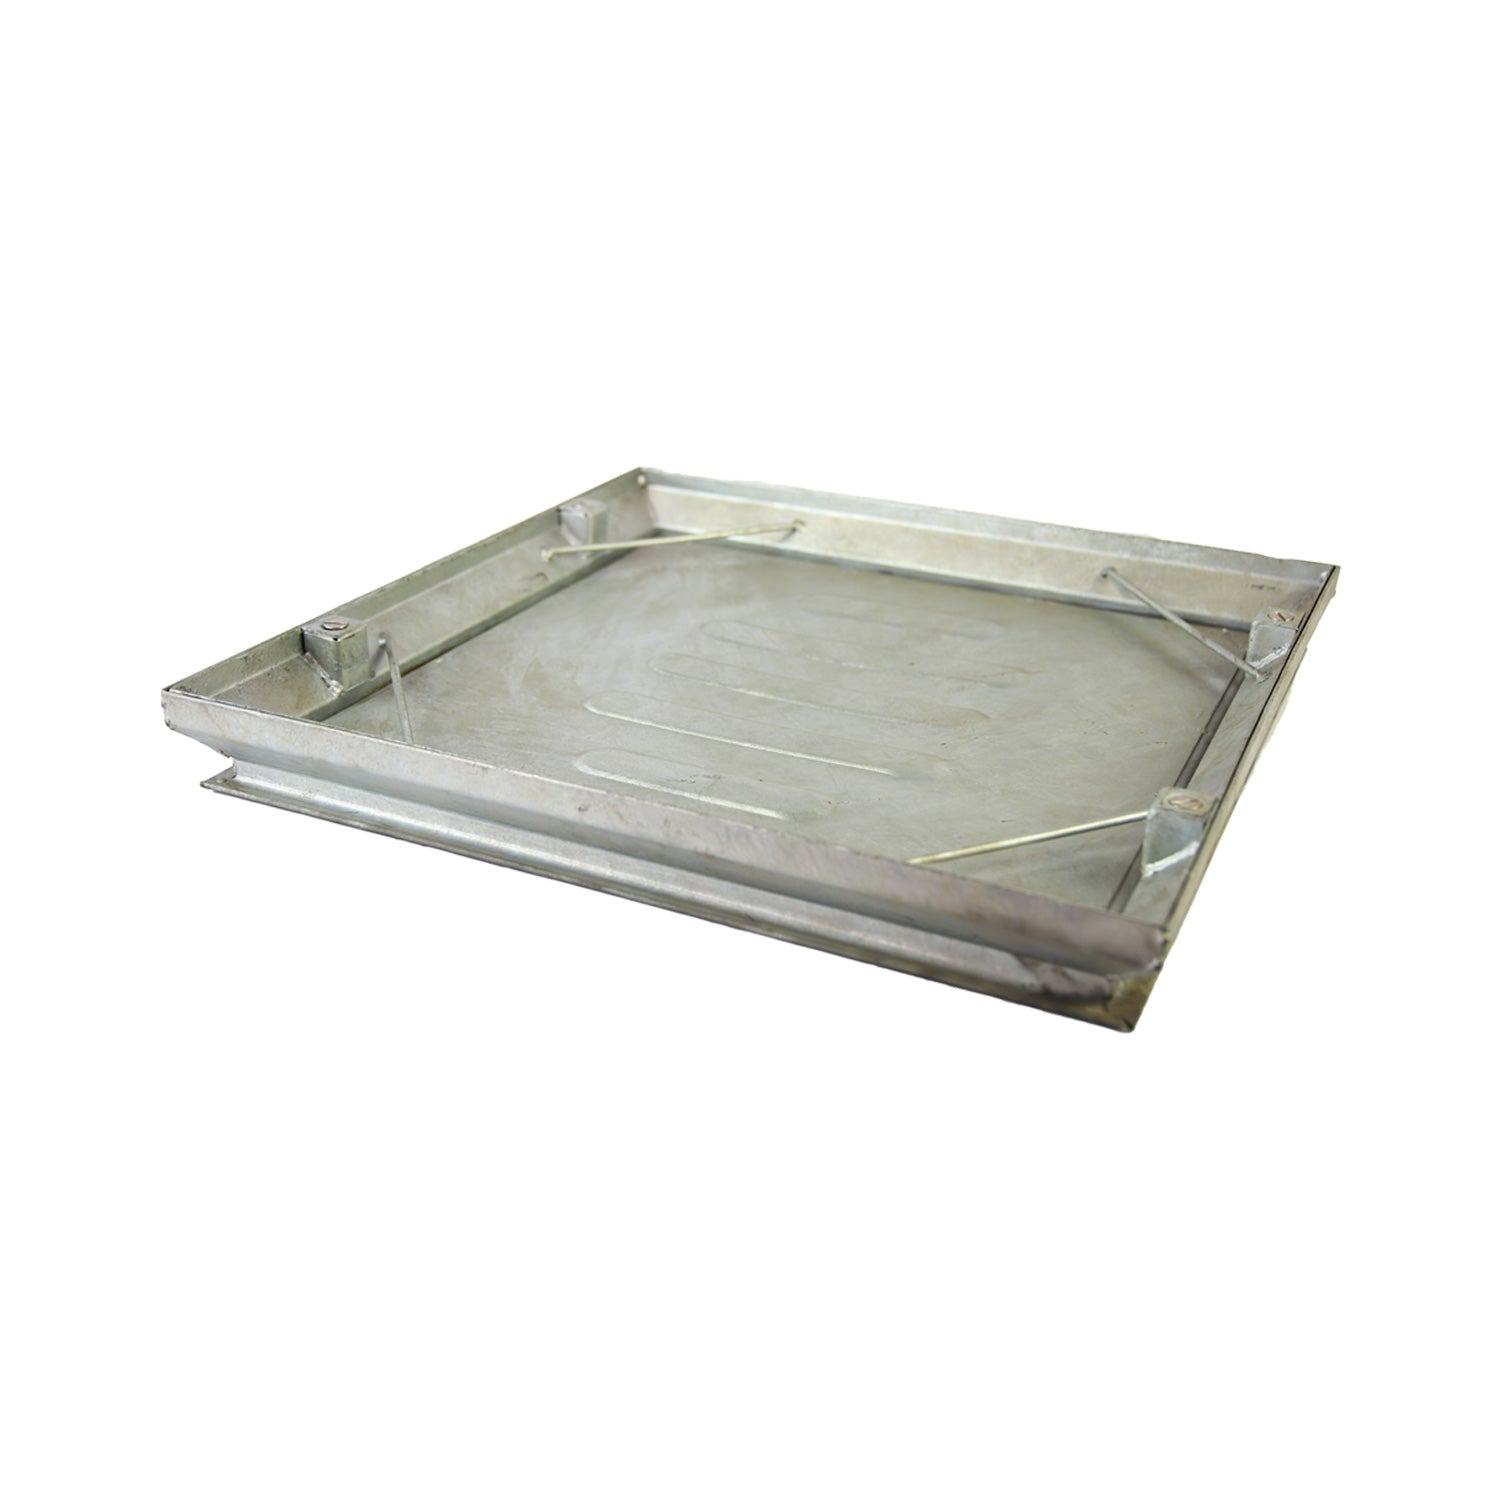 Double Seal Tray Type Manhole Cover 600mm x 450mm